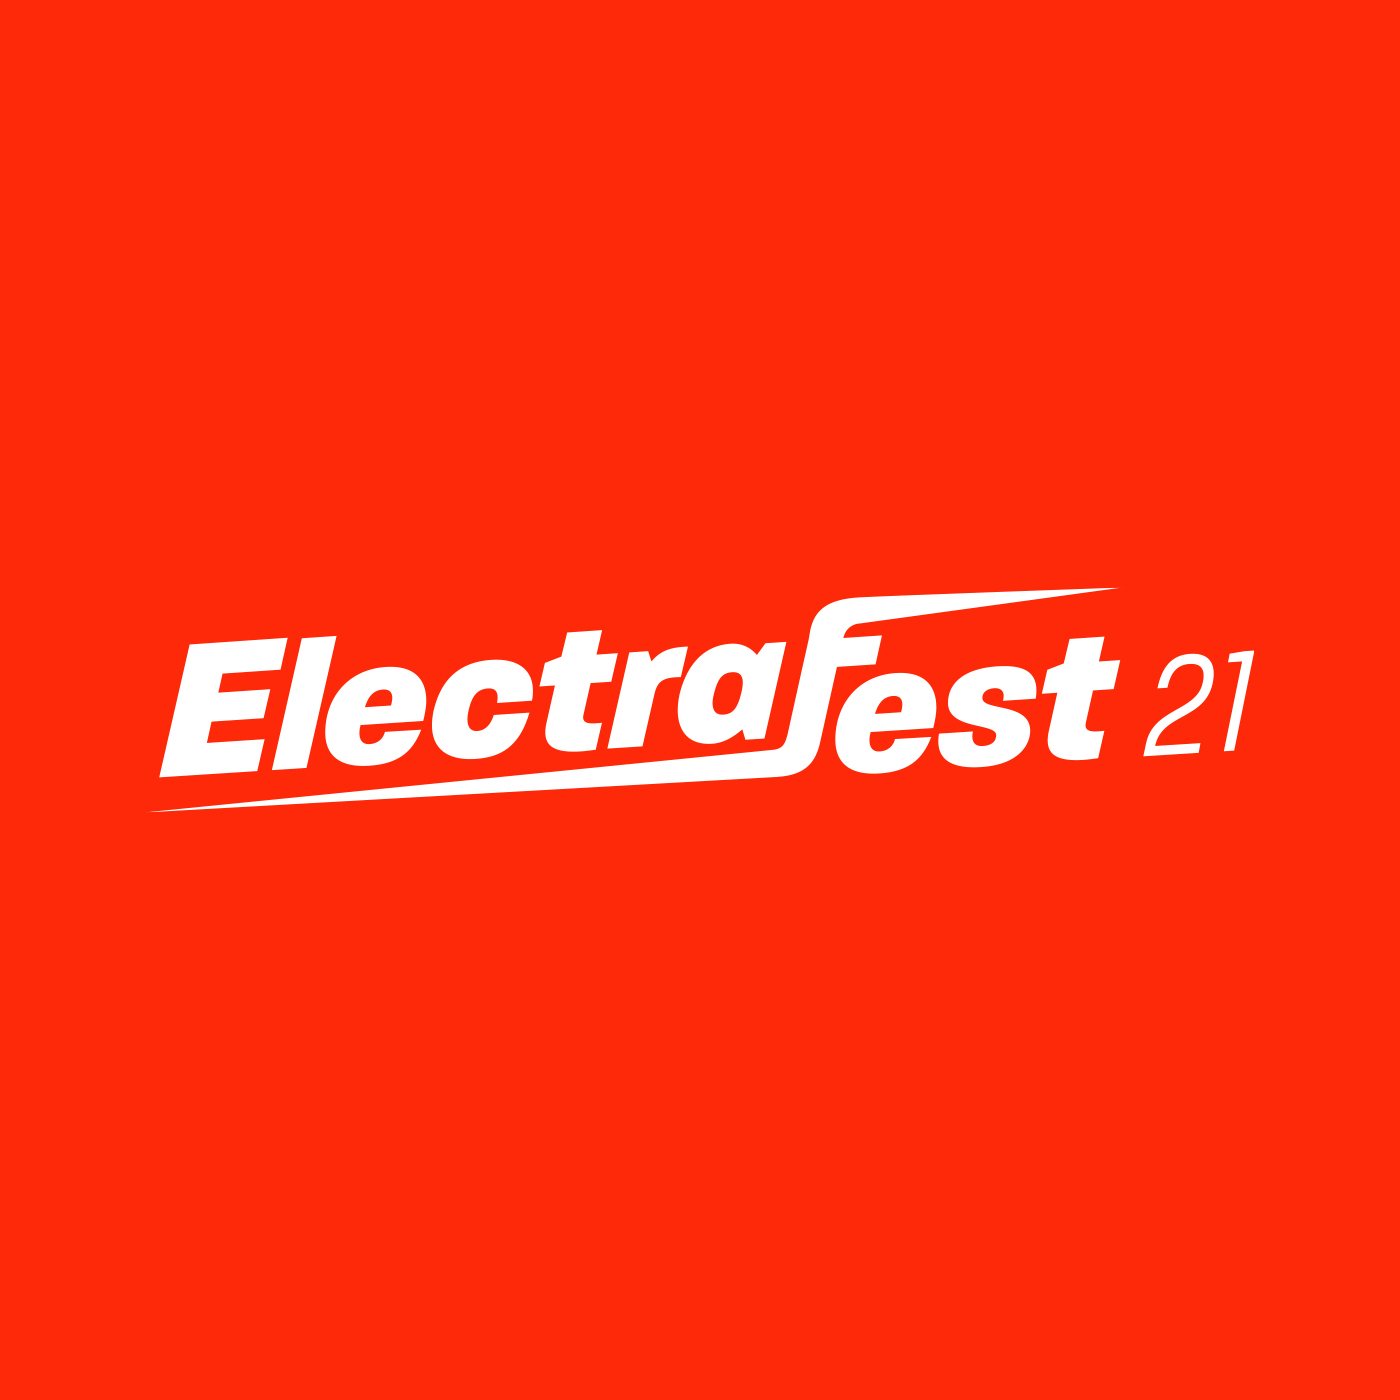 Vancouver's ElectraFest event branding and website design by Flipside Creative.